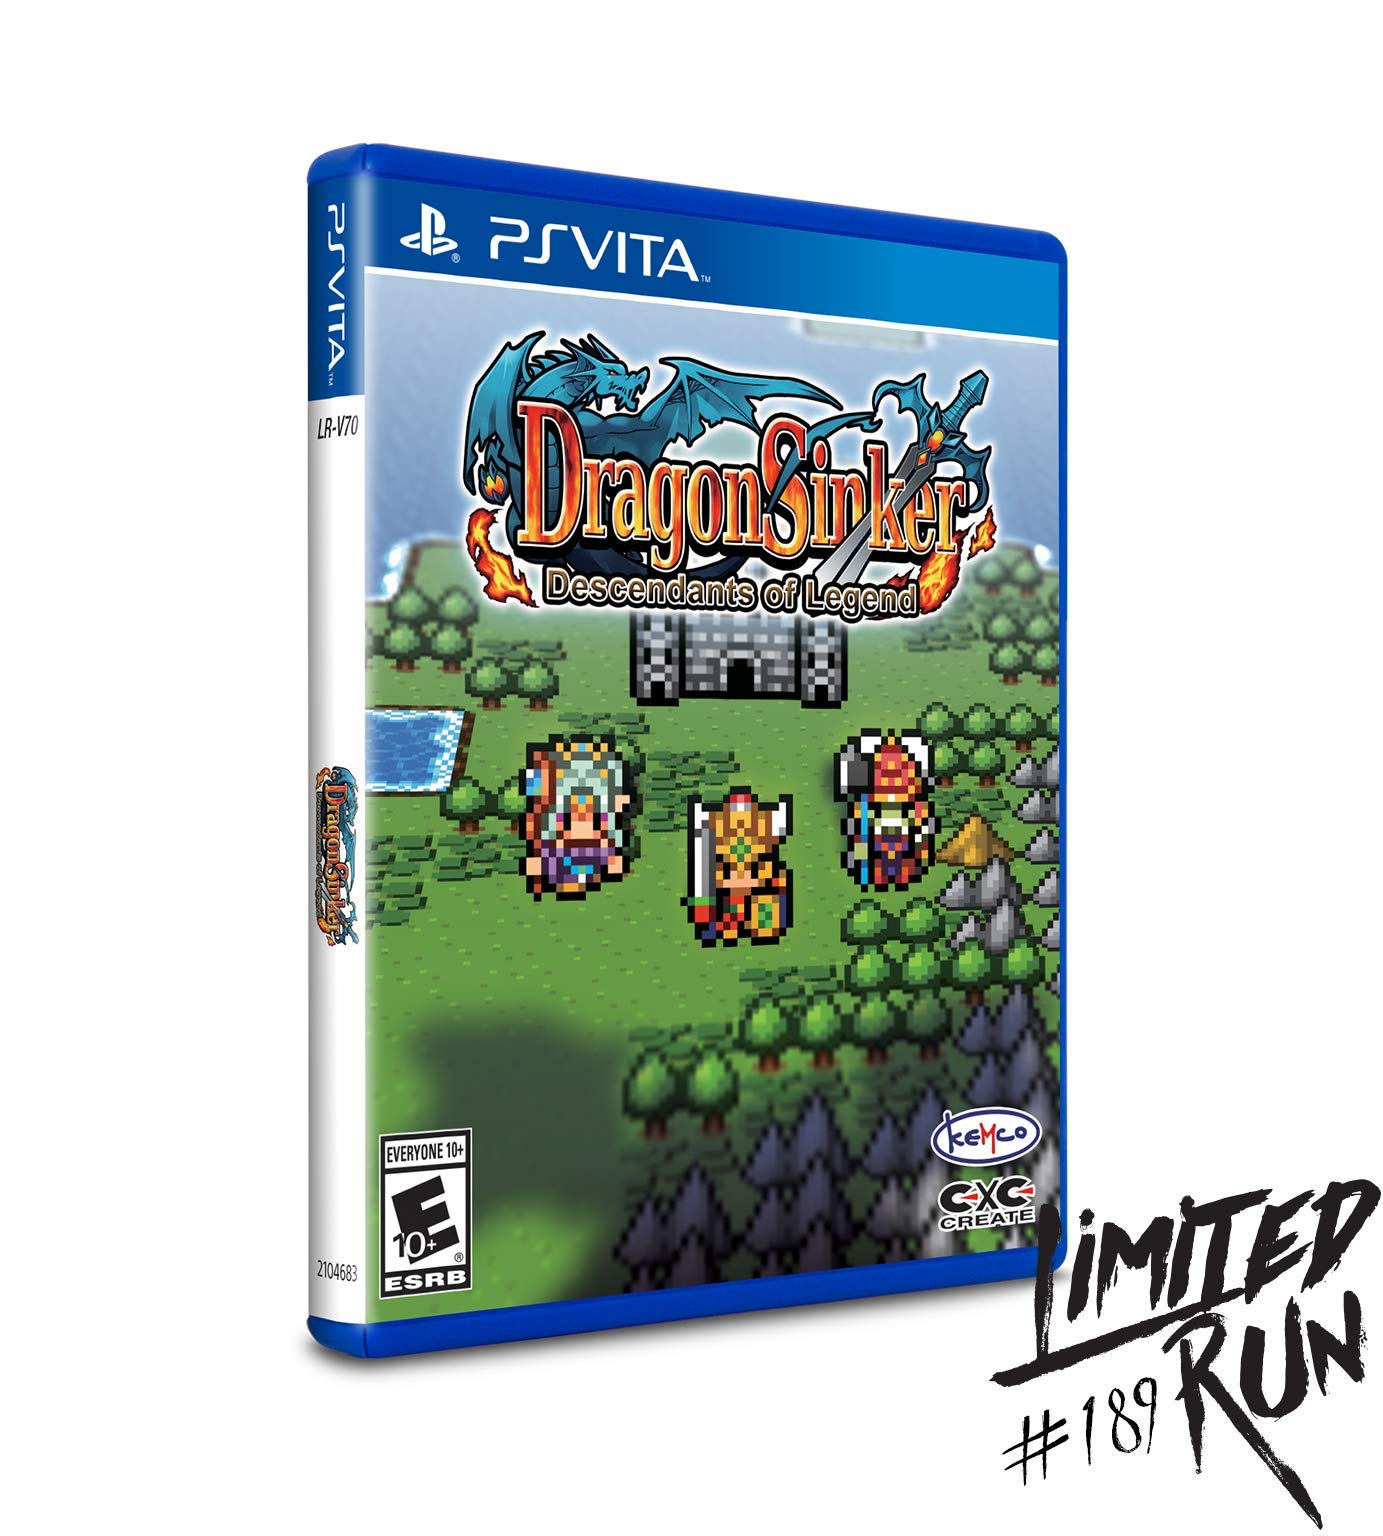 Dragon Sinker: Descendants of Legend (Limited Run #189) - PlayStation Vita